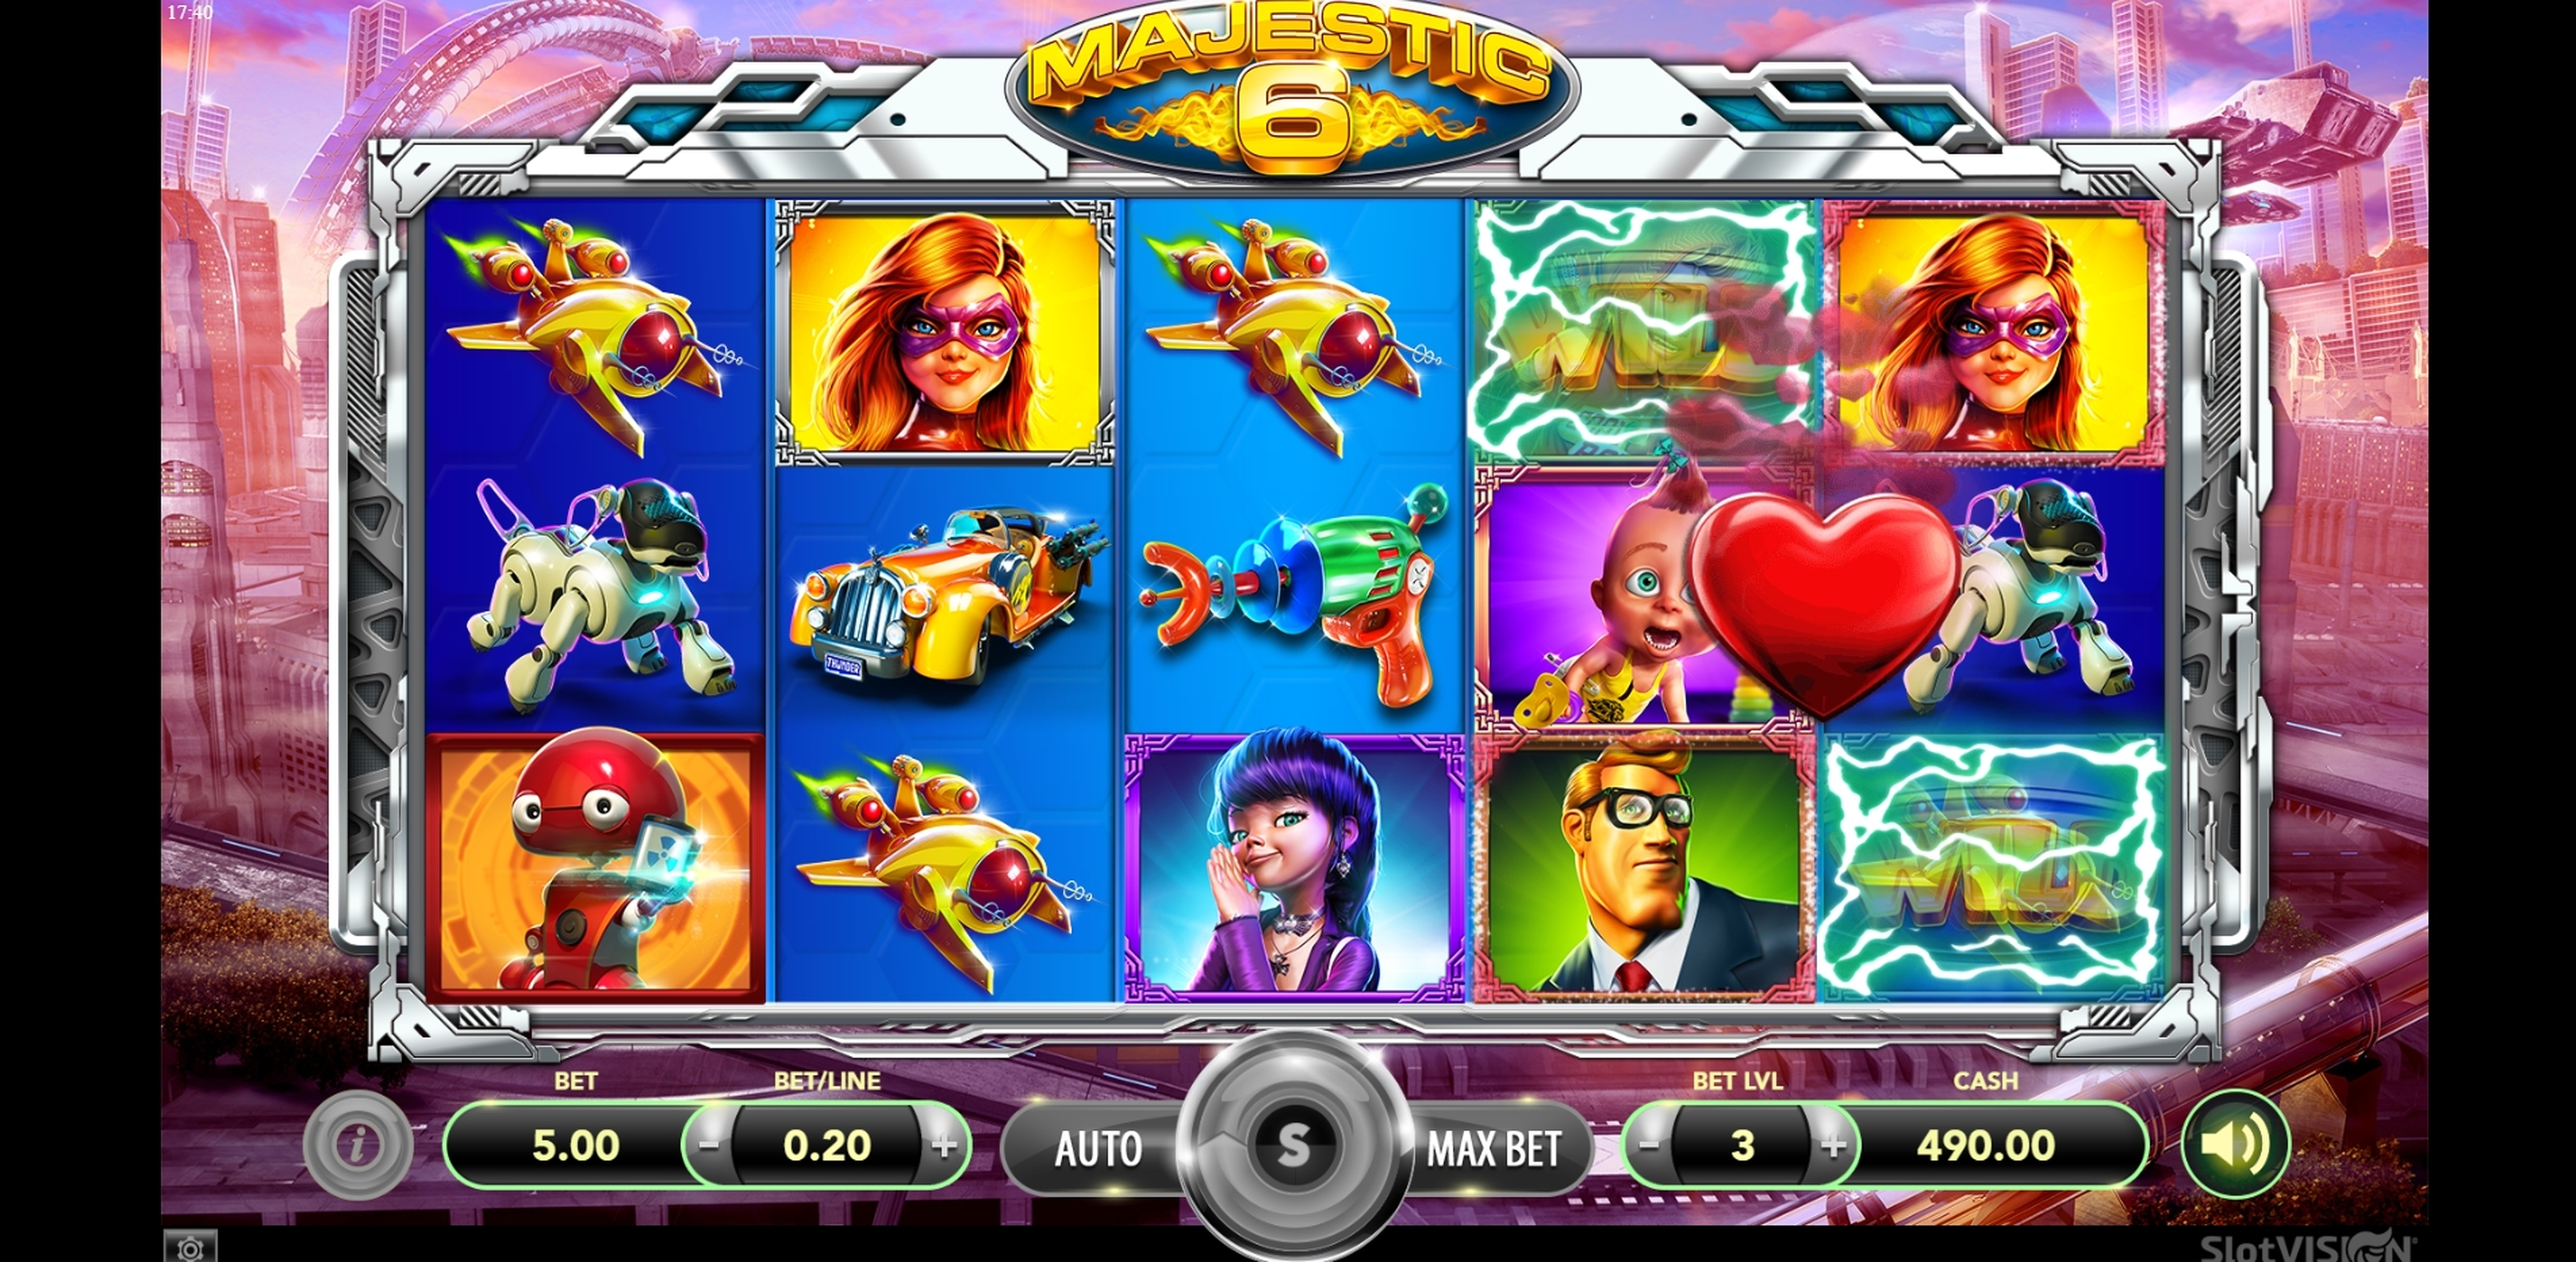 Win Money in Majestic 6 Free Slot Game by SlotVision